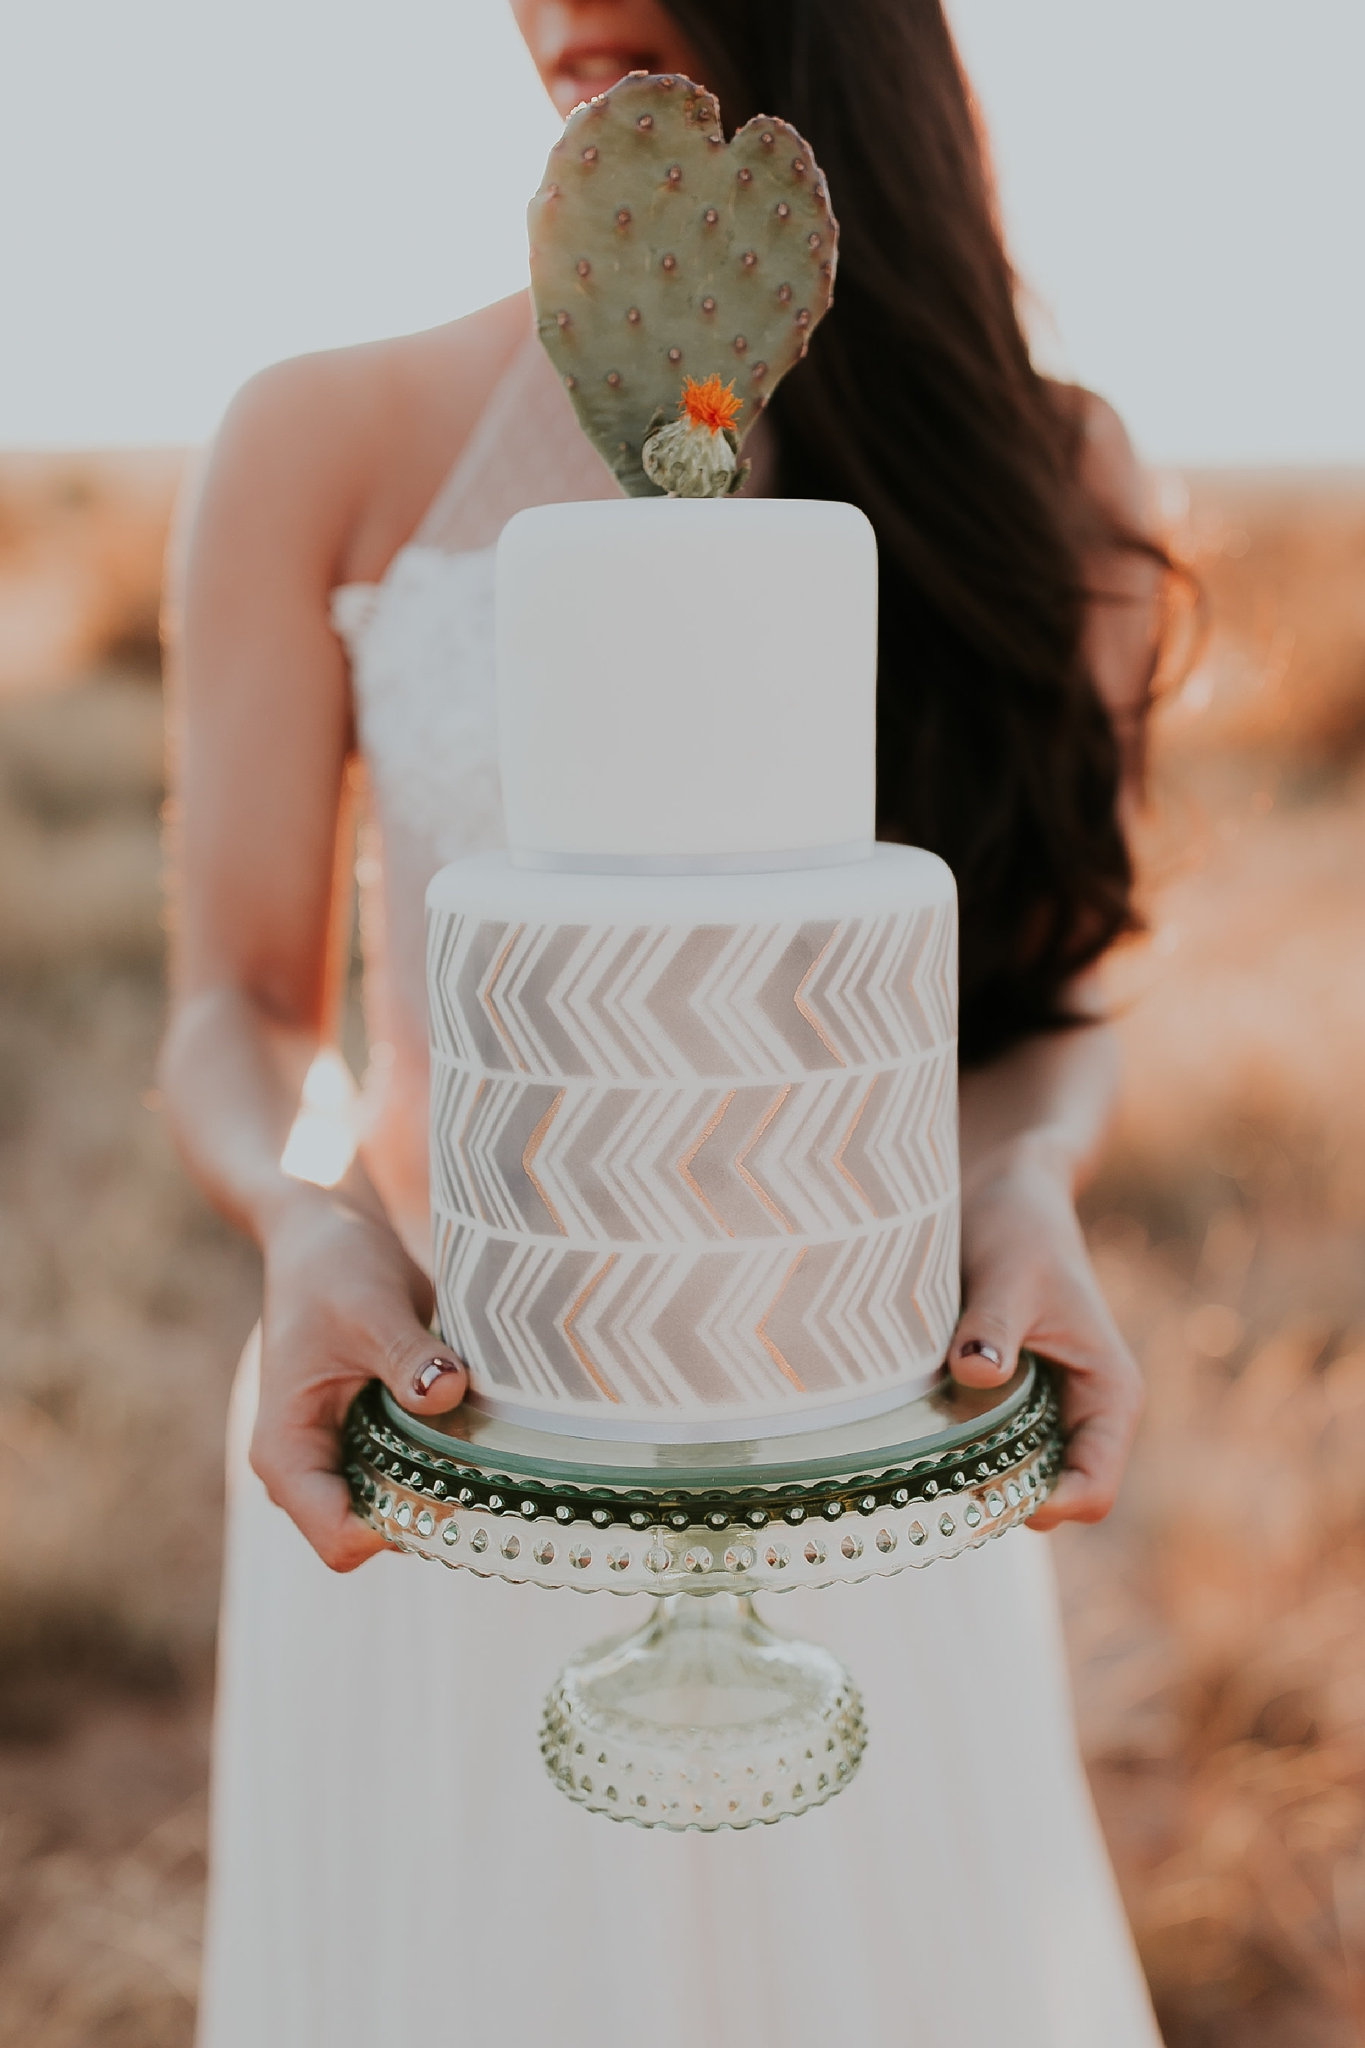 Alicia+lucia+photography+-+albuquerque+wedding+photographer+-+santa+fe+wedding+photography+-+new+mexico+wedding+photographer+-+wedding+reception+-+wedding+cake+-+wedding+sweets+-+maggies+cakes_0023.jpg